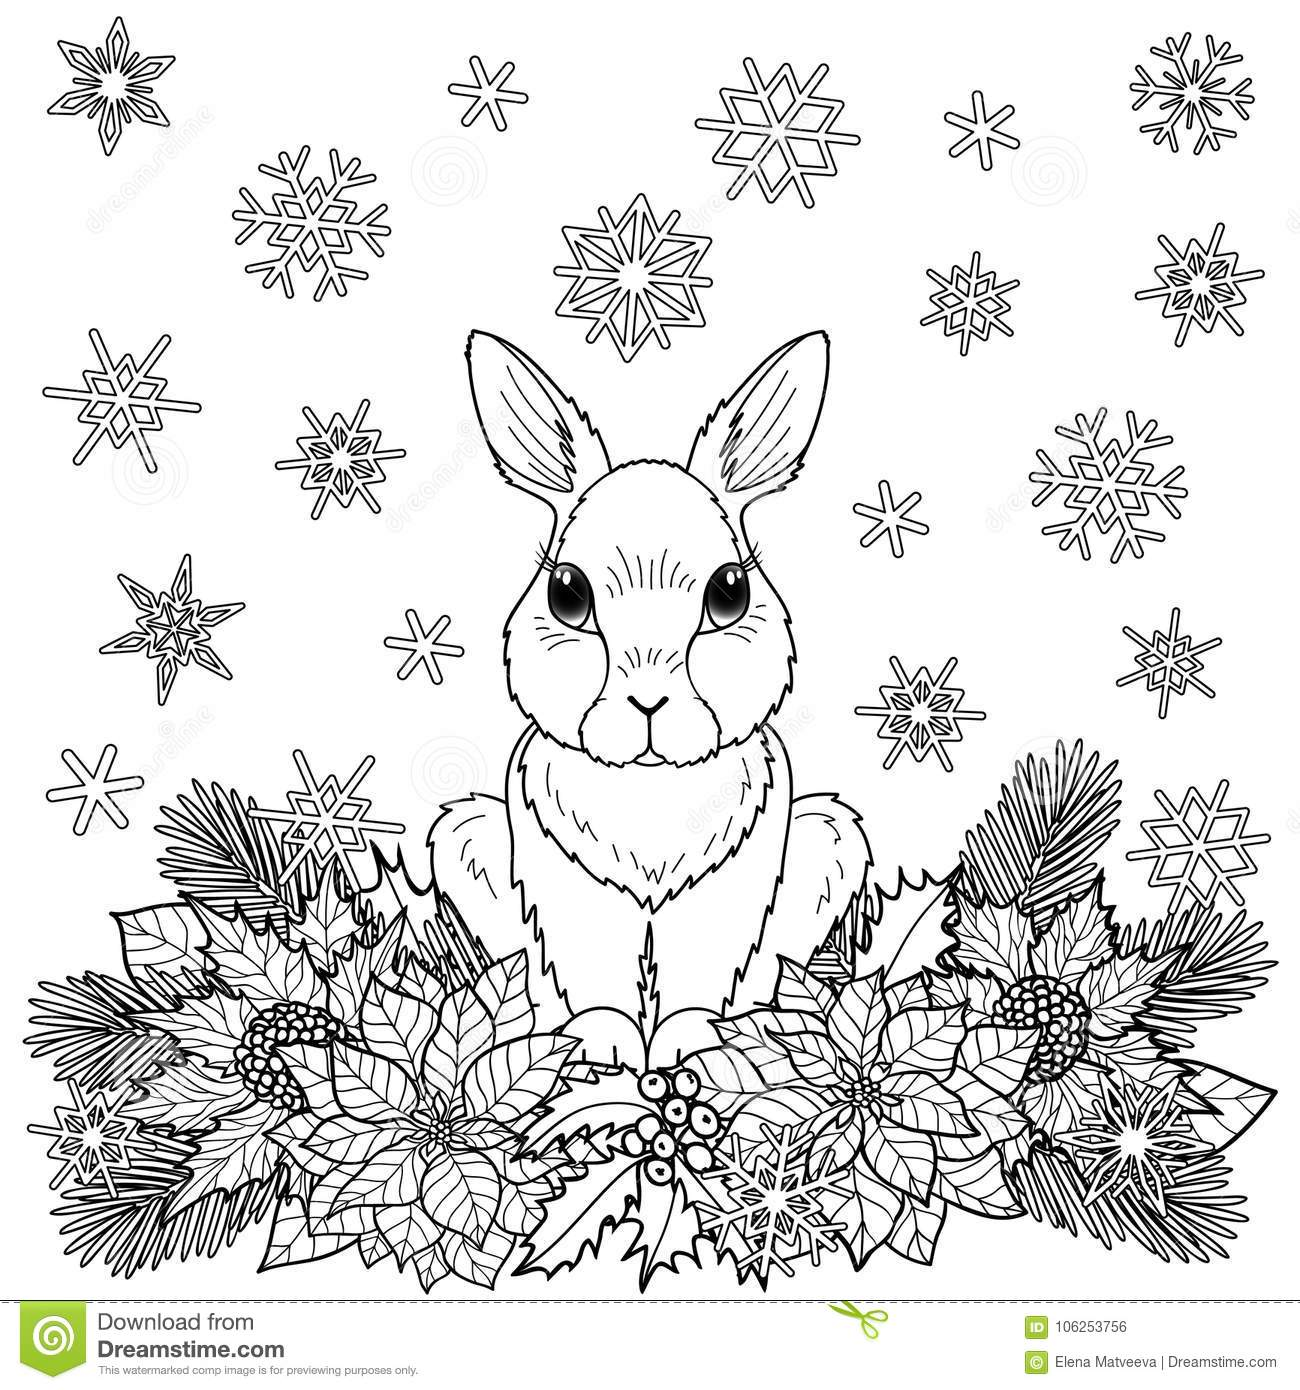 winter nature coloring pages | Winter Coloring Page With Rabbit Stock Vector ...